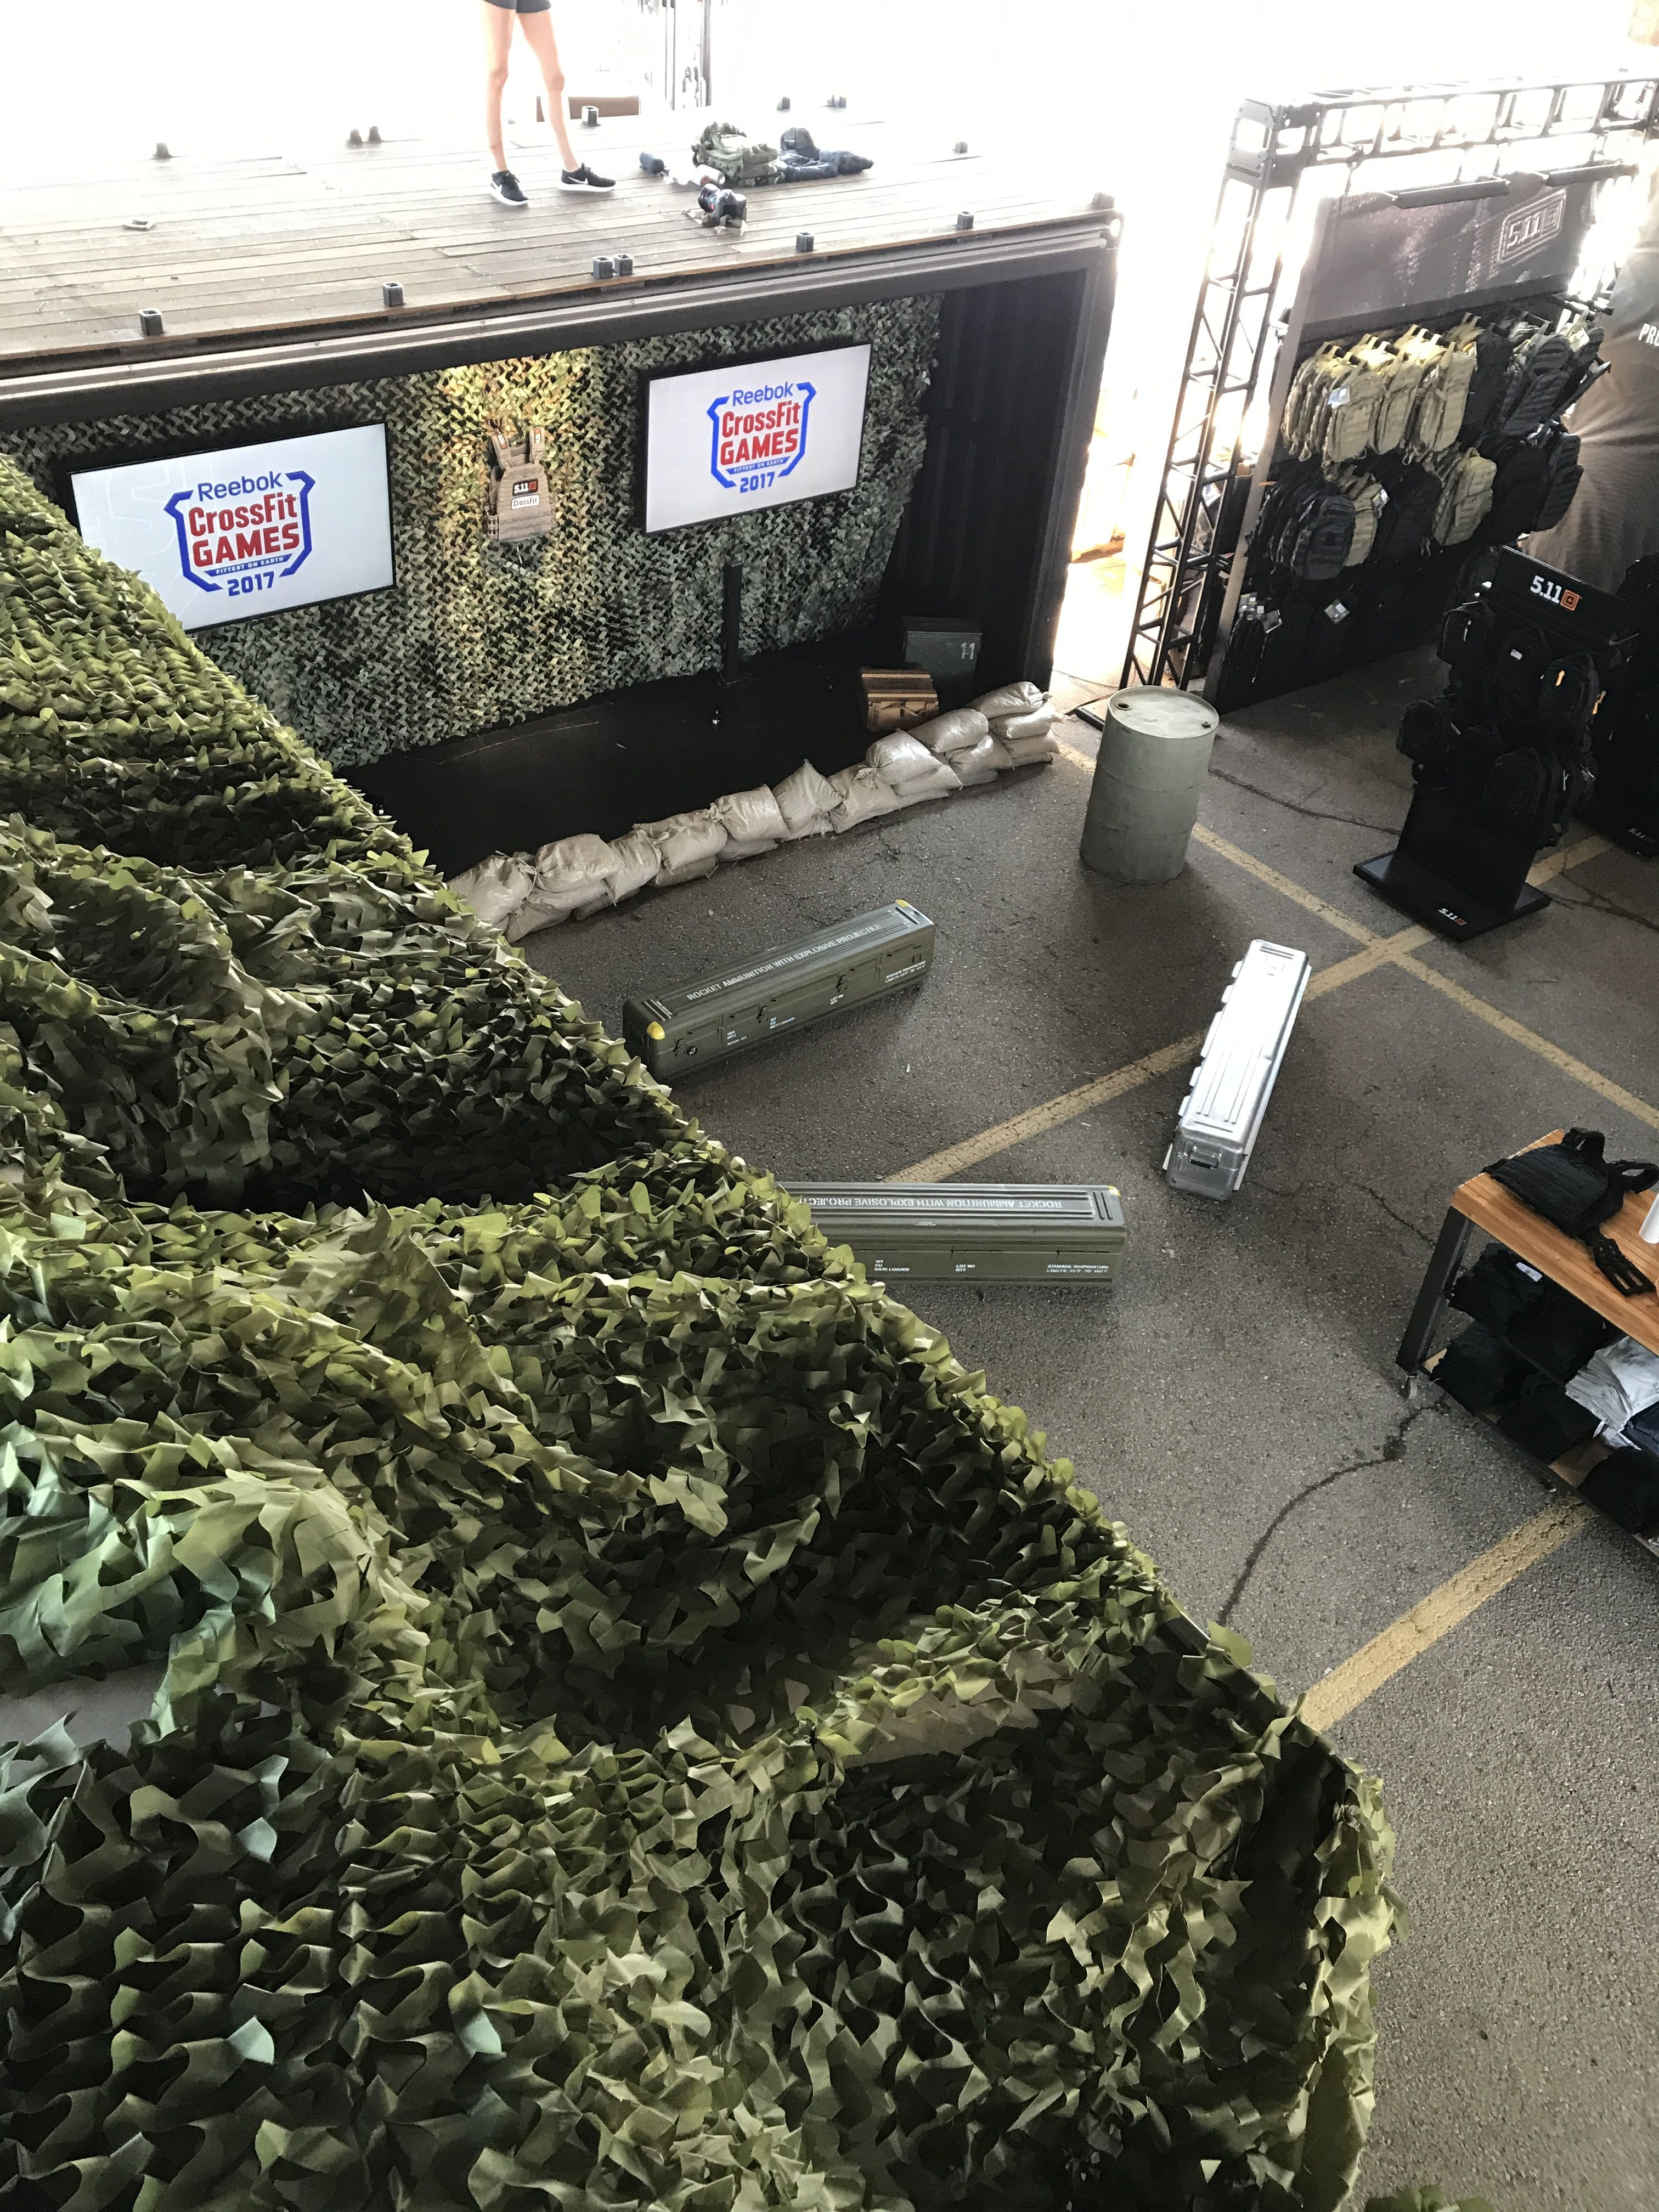 511Tactical Tent at the CrossFit Games in Madison, WI